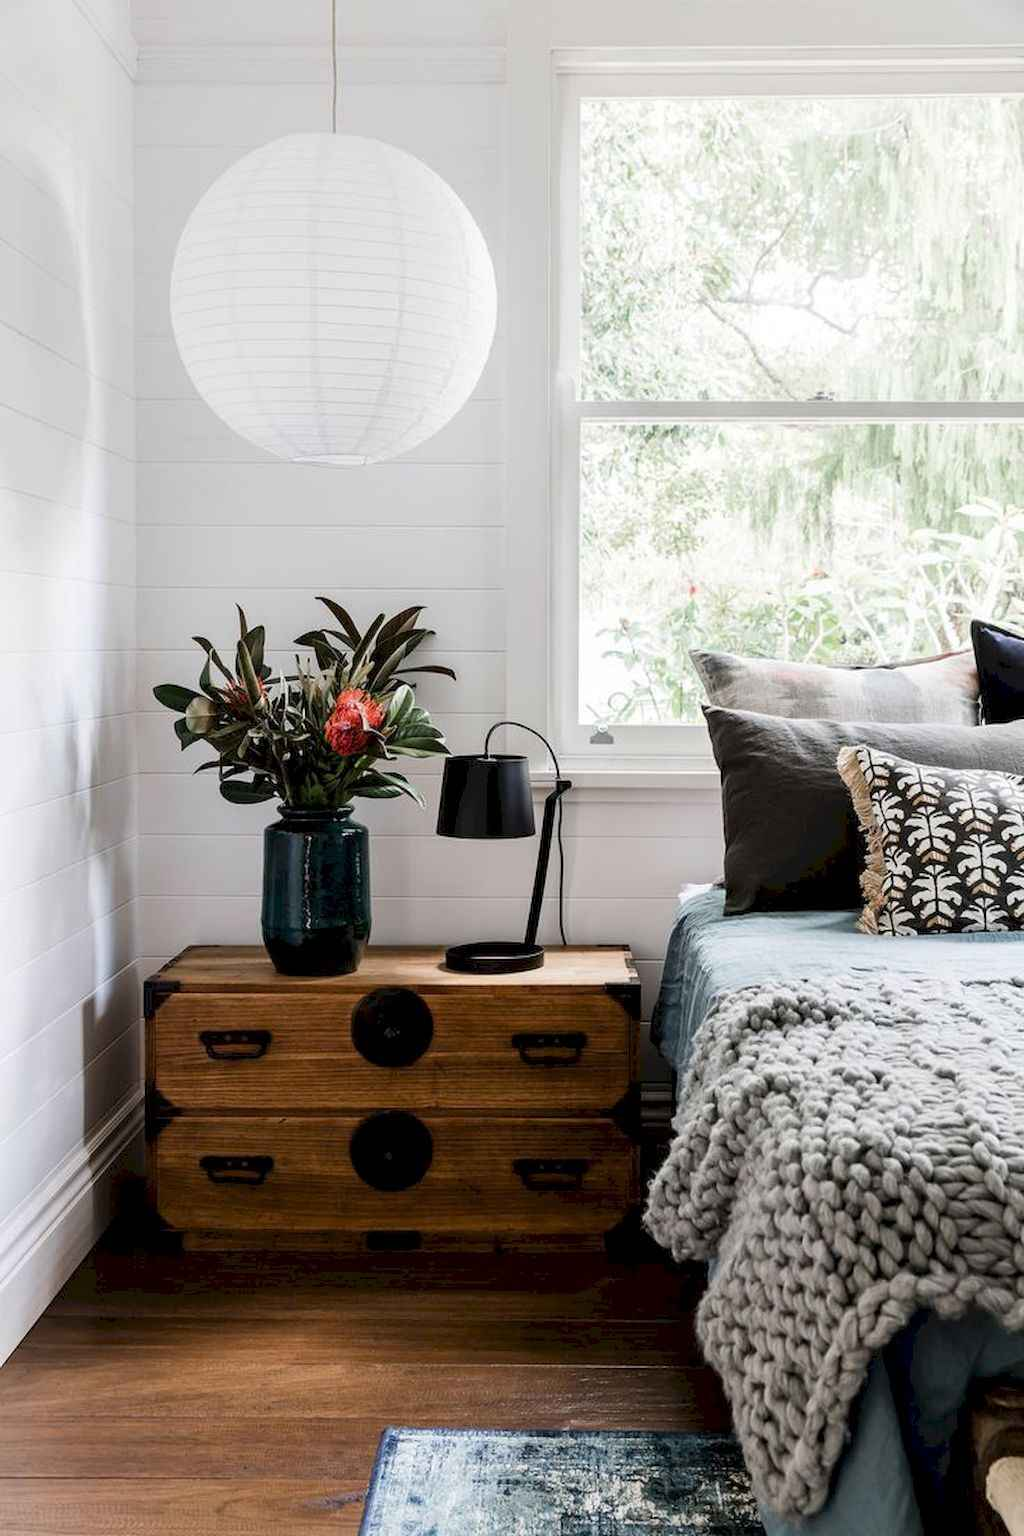 Cozy apartment decorating ideas on a budget (15)